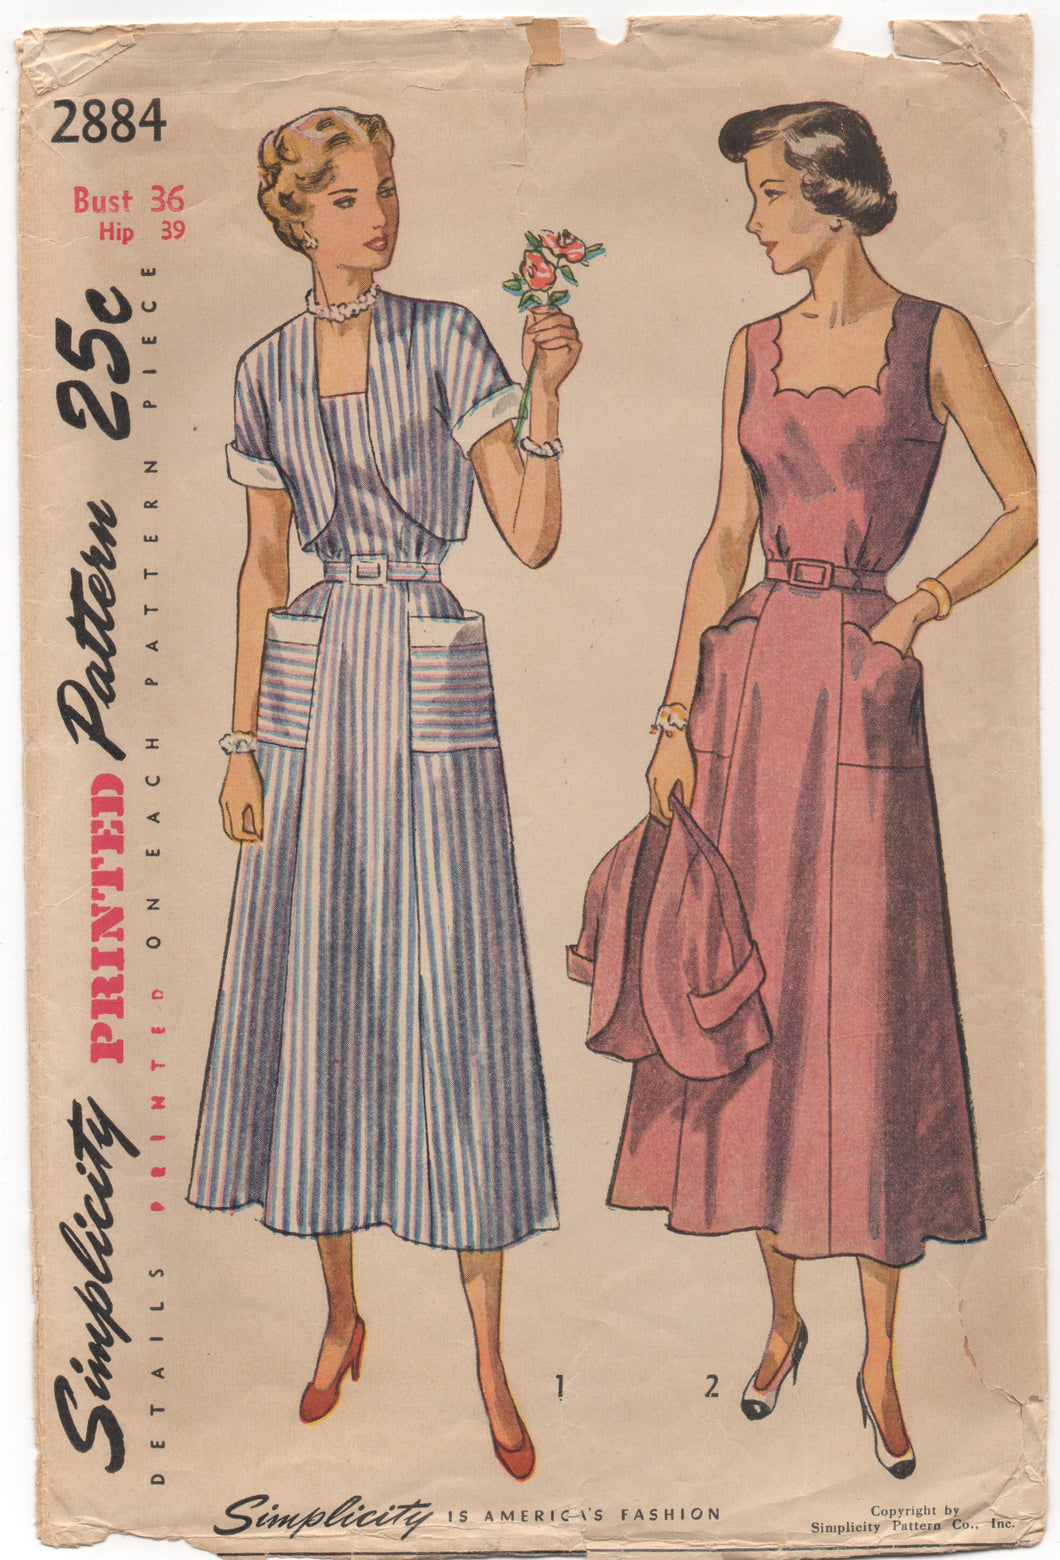 1940's Simplicity Day Dress with Scallop or Straight edge Neckline and Bolero - Bust 36